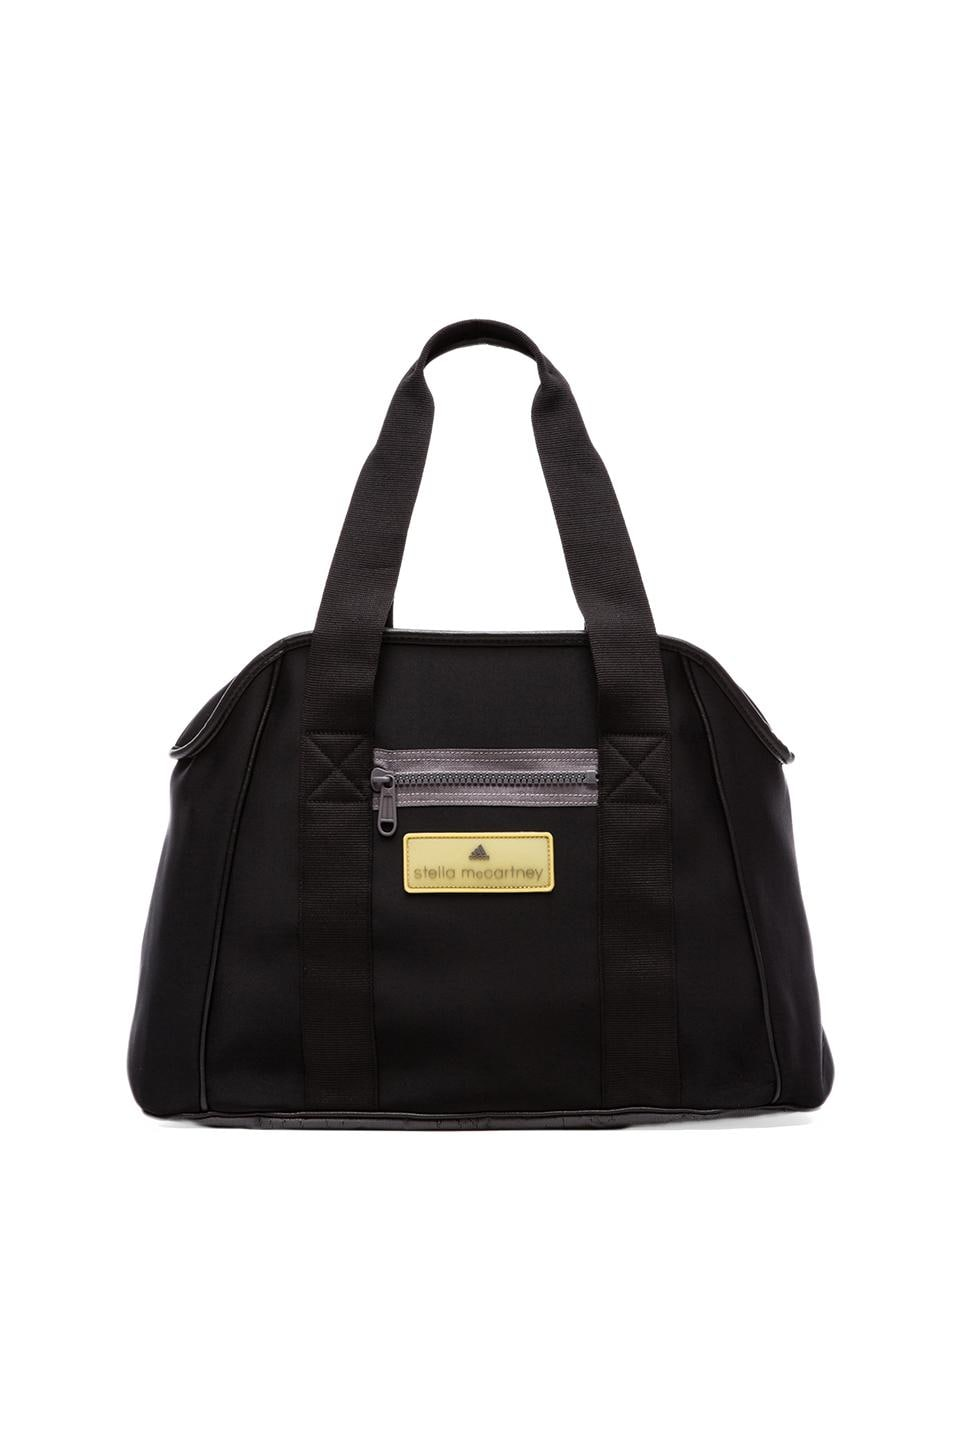 ffd18ec81e adidas by Stella McCartney Small Gym Bag in Black & Grey | REVOLVE